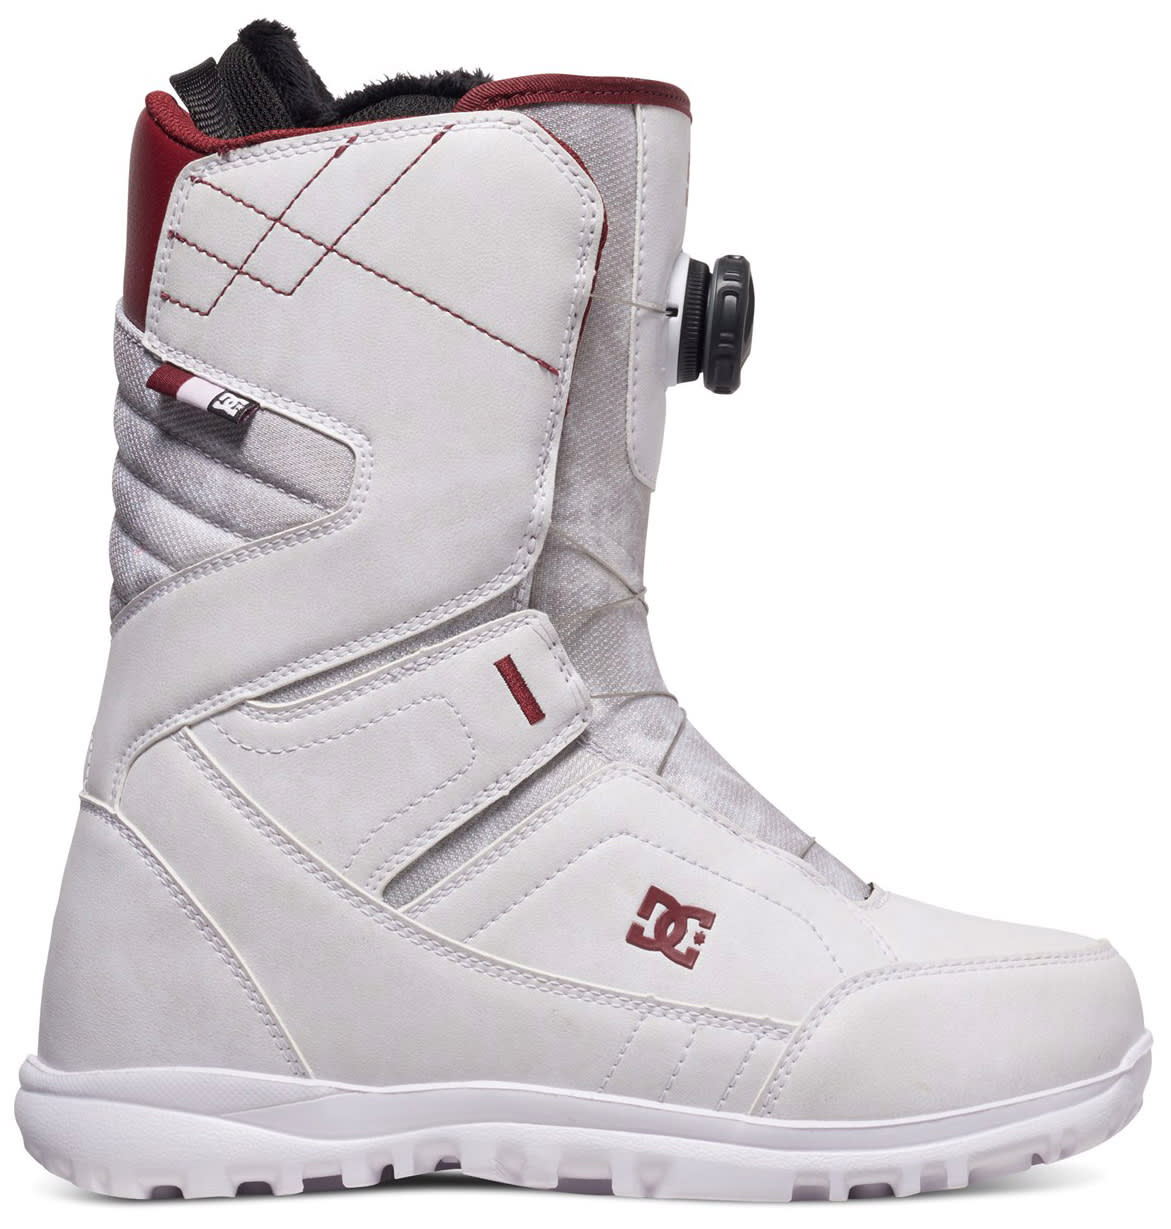 on sale dc search boa snowboard boots womens 2017